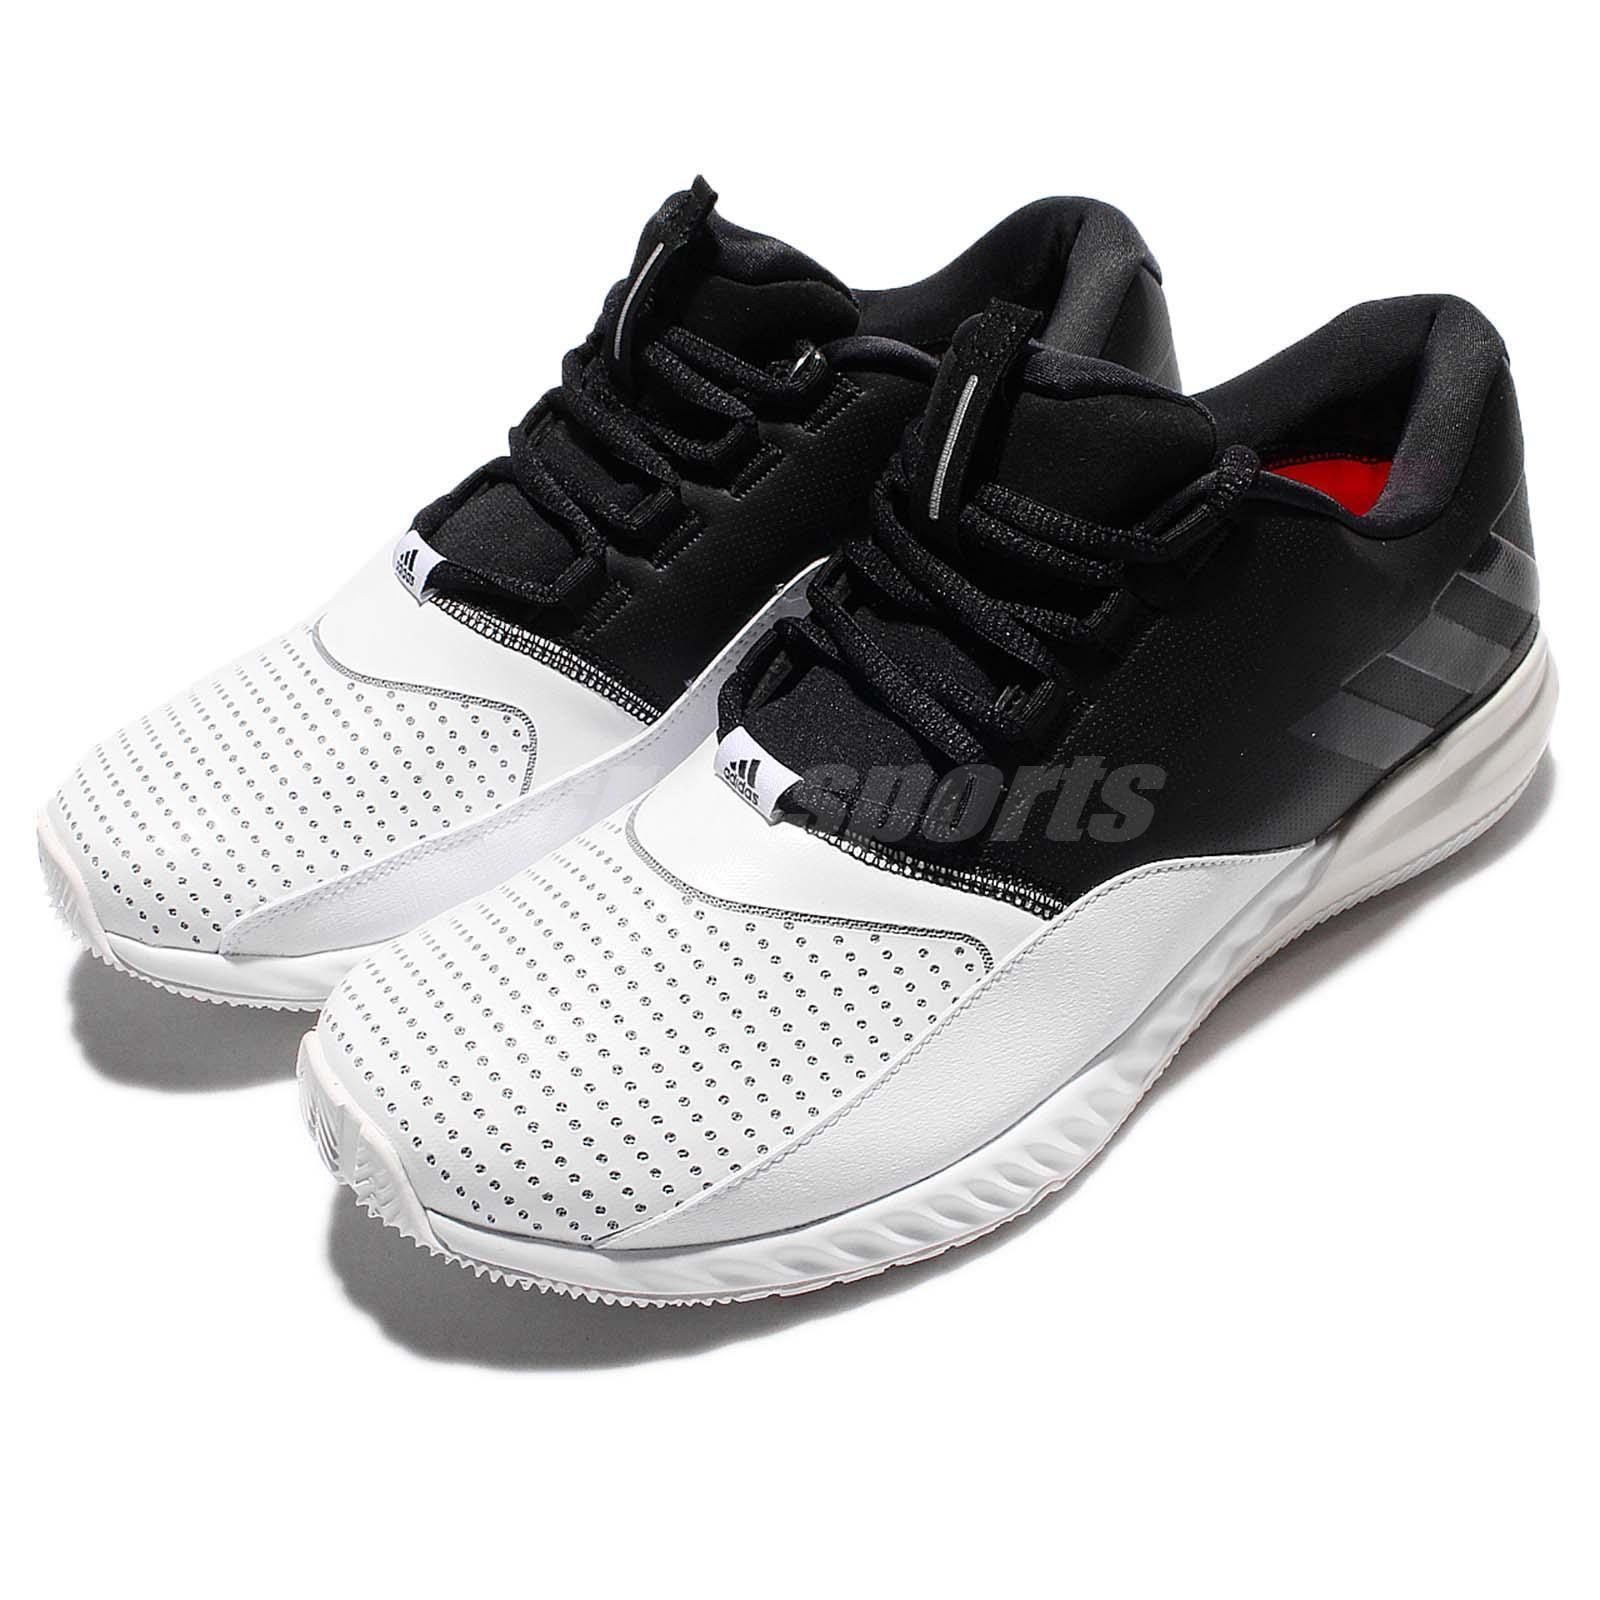 4009a2fd5ba51 adidas CrazyMove One Trainer Bounce M Black White Mens Training Shoes AQ3919